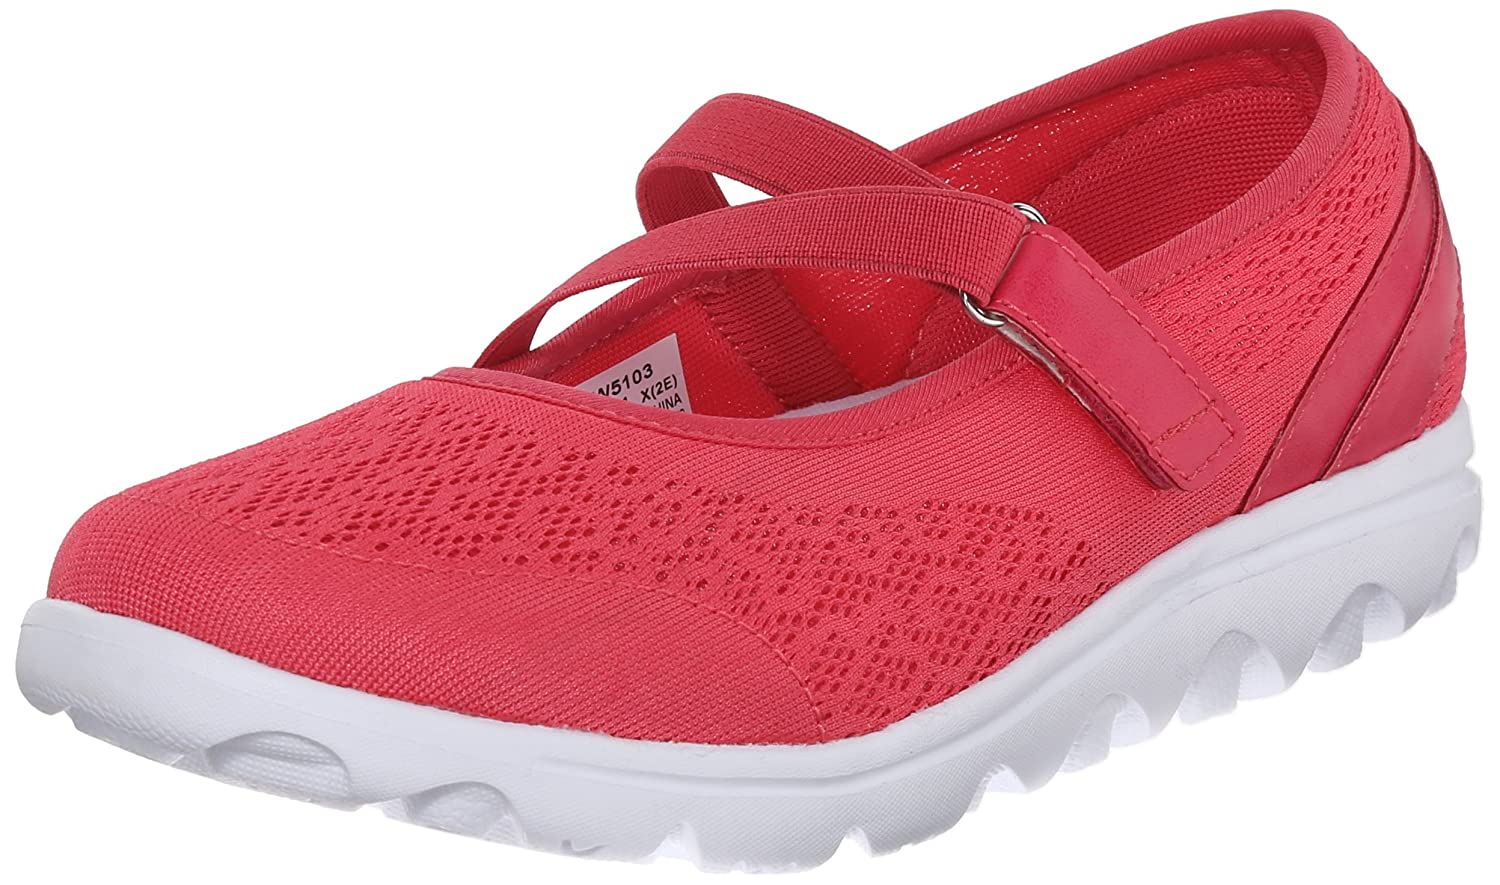 Propet Women's TravelActiv Mary Jane Fashion Sneaker B0118FHTU4 8.5 2E US|Watermelon Red